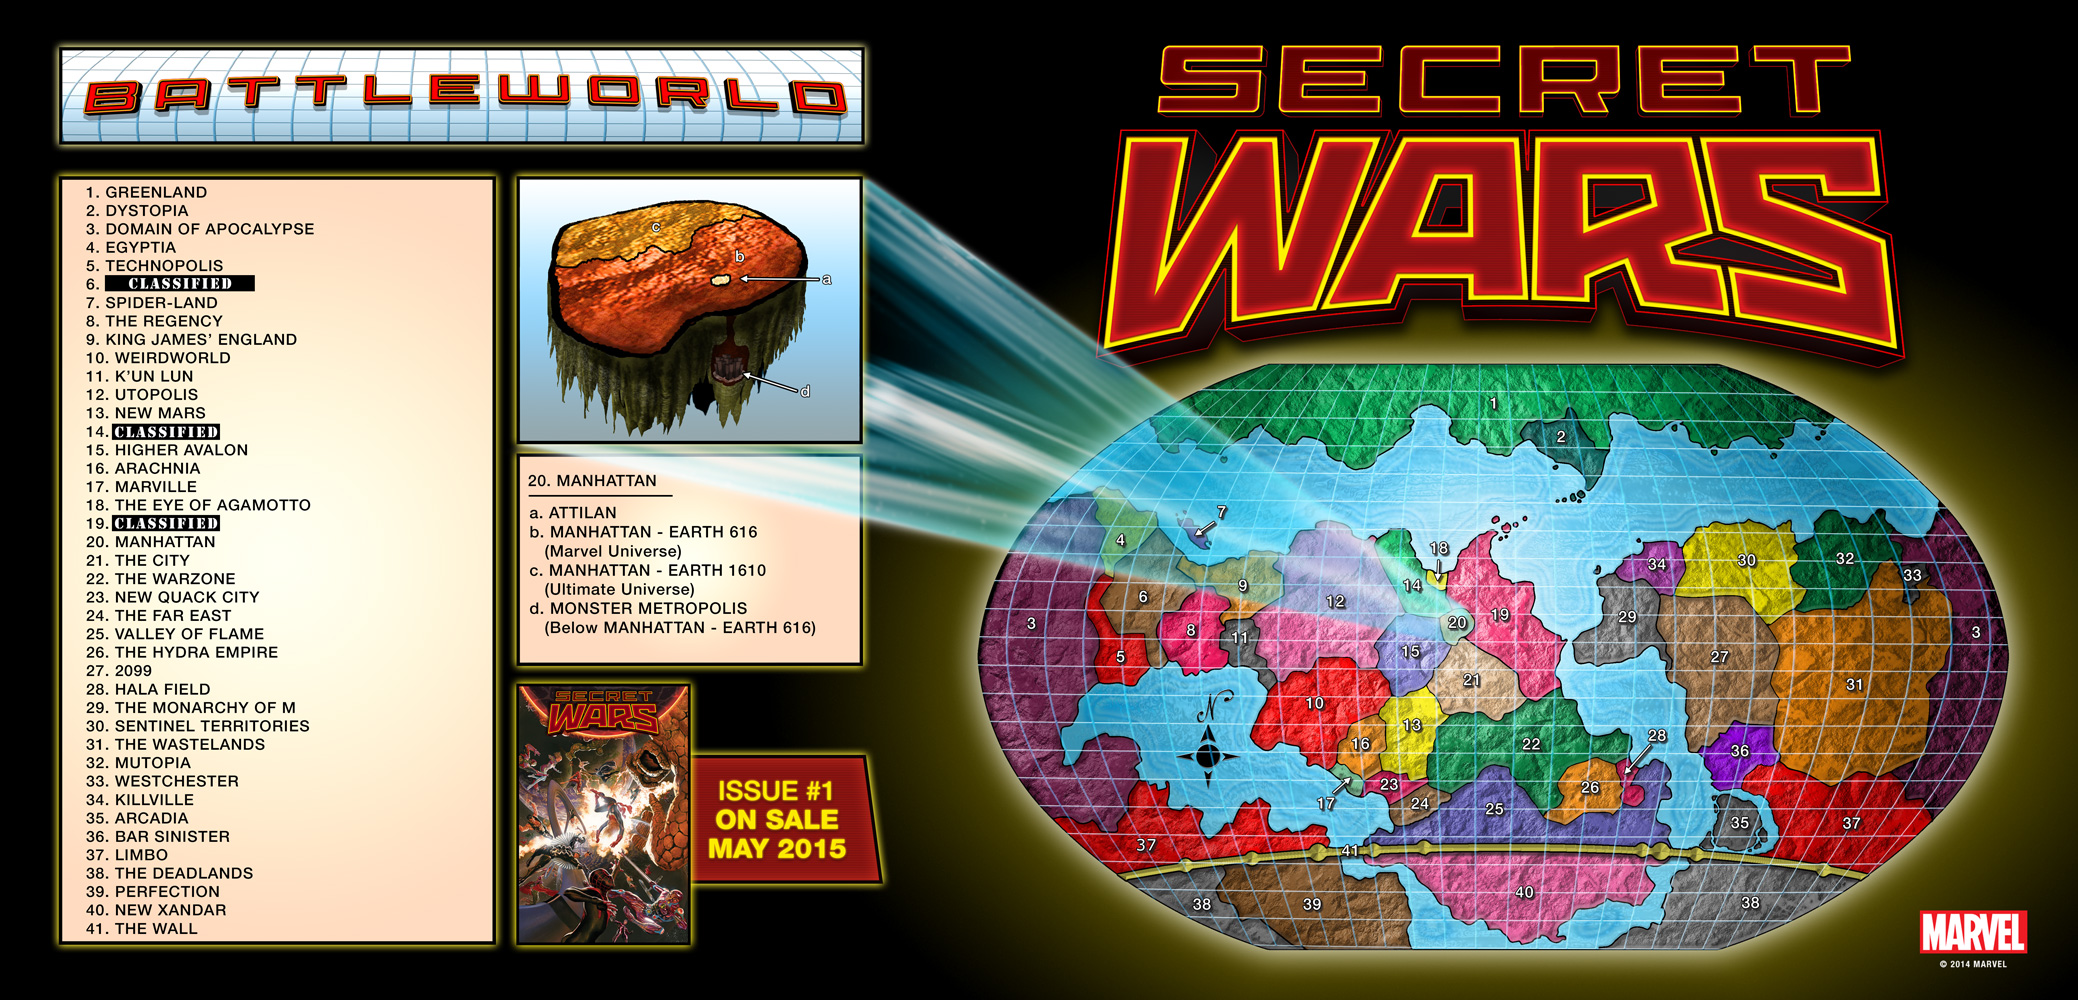 """I will say, the promotion behind """"Secret Wars"""" has been wickedly fun, highlighted by an interactive map revealing the known realms of Battleworld -- and lots of guesswork as to the identity of the ones that remain classified."""